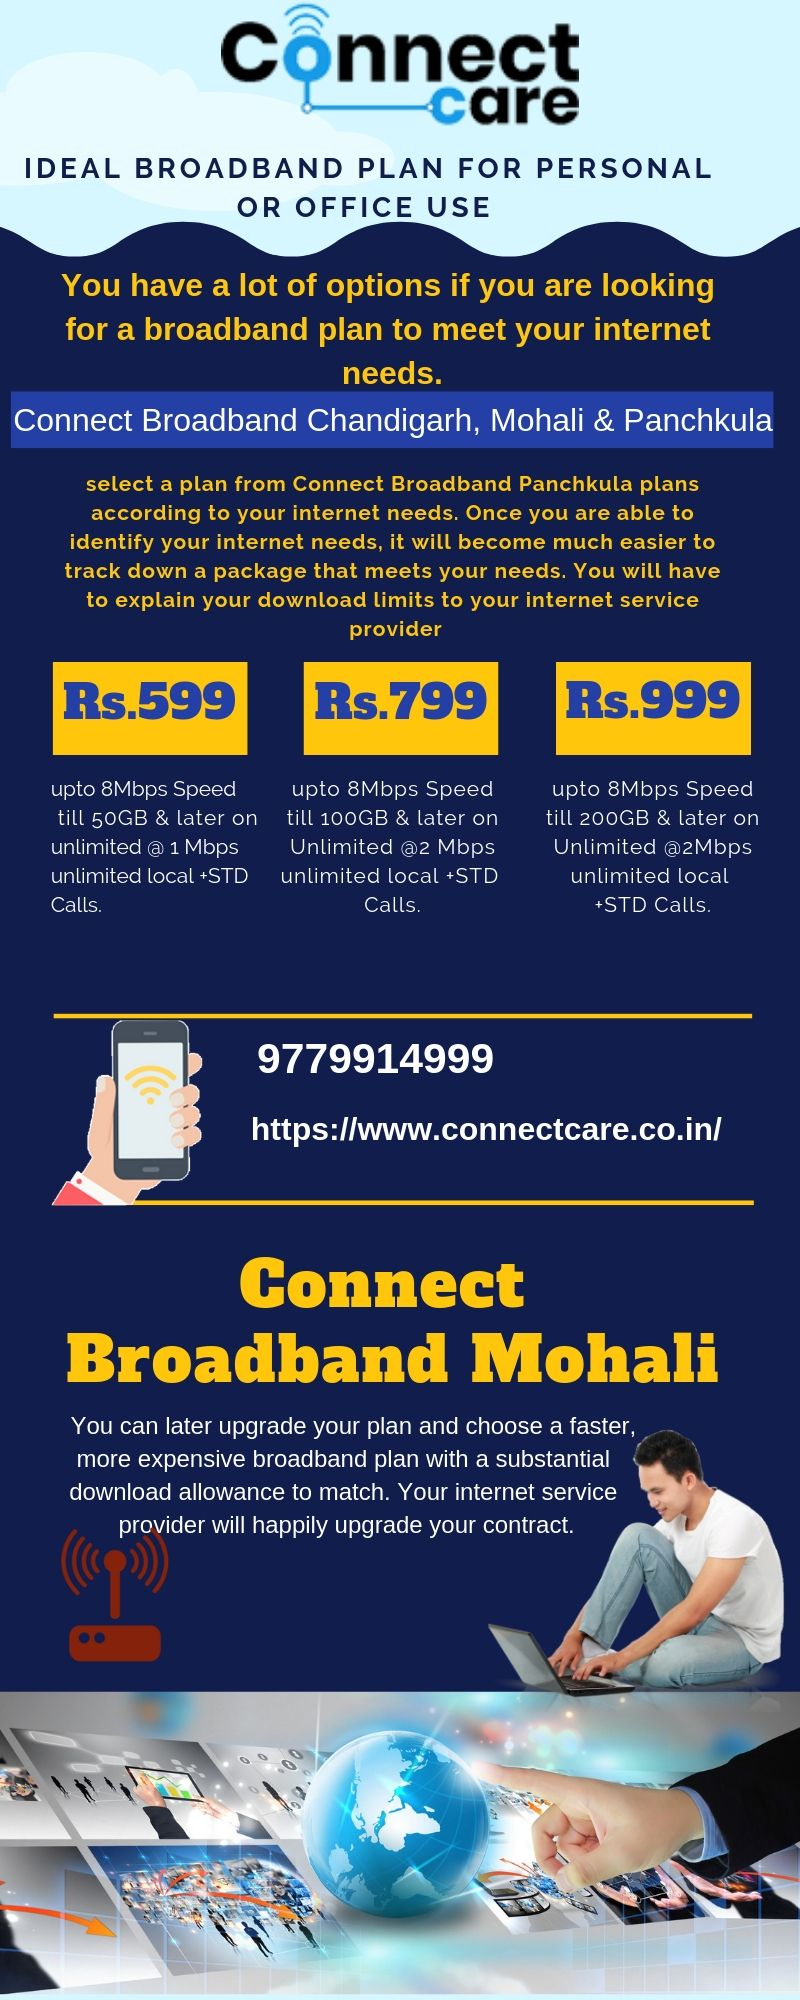 Best Broadband Plans in Chandigarh with Connect broadband